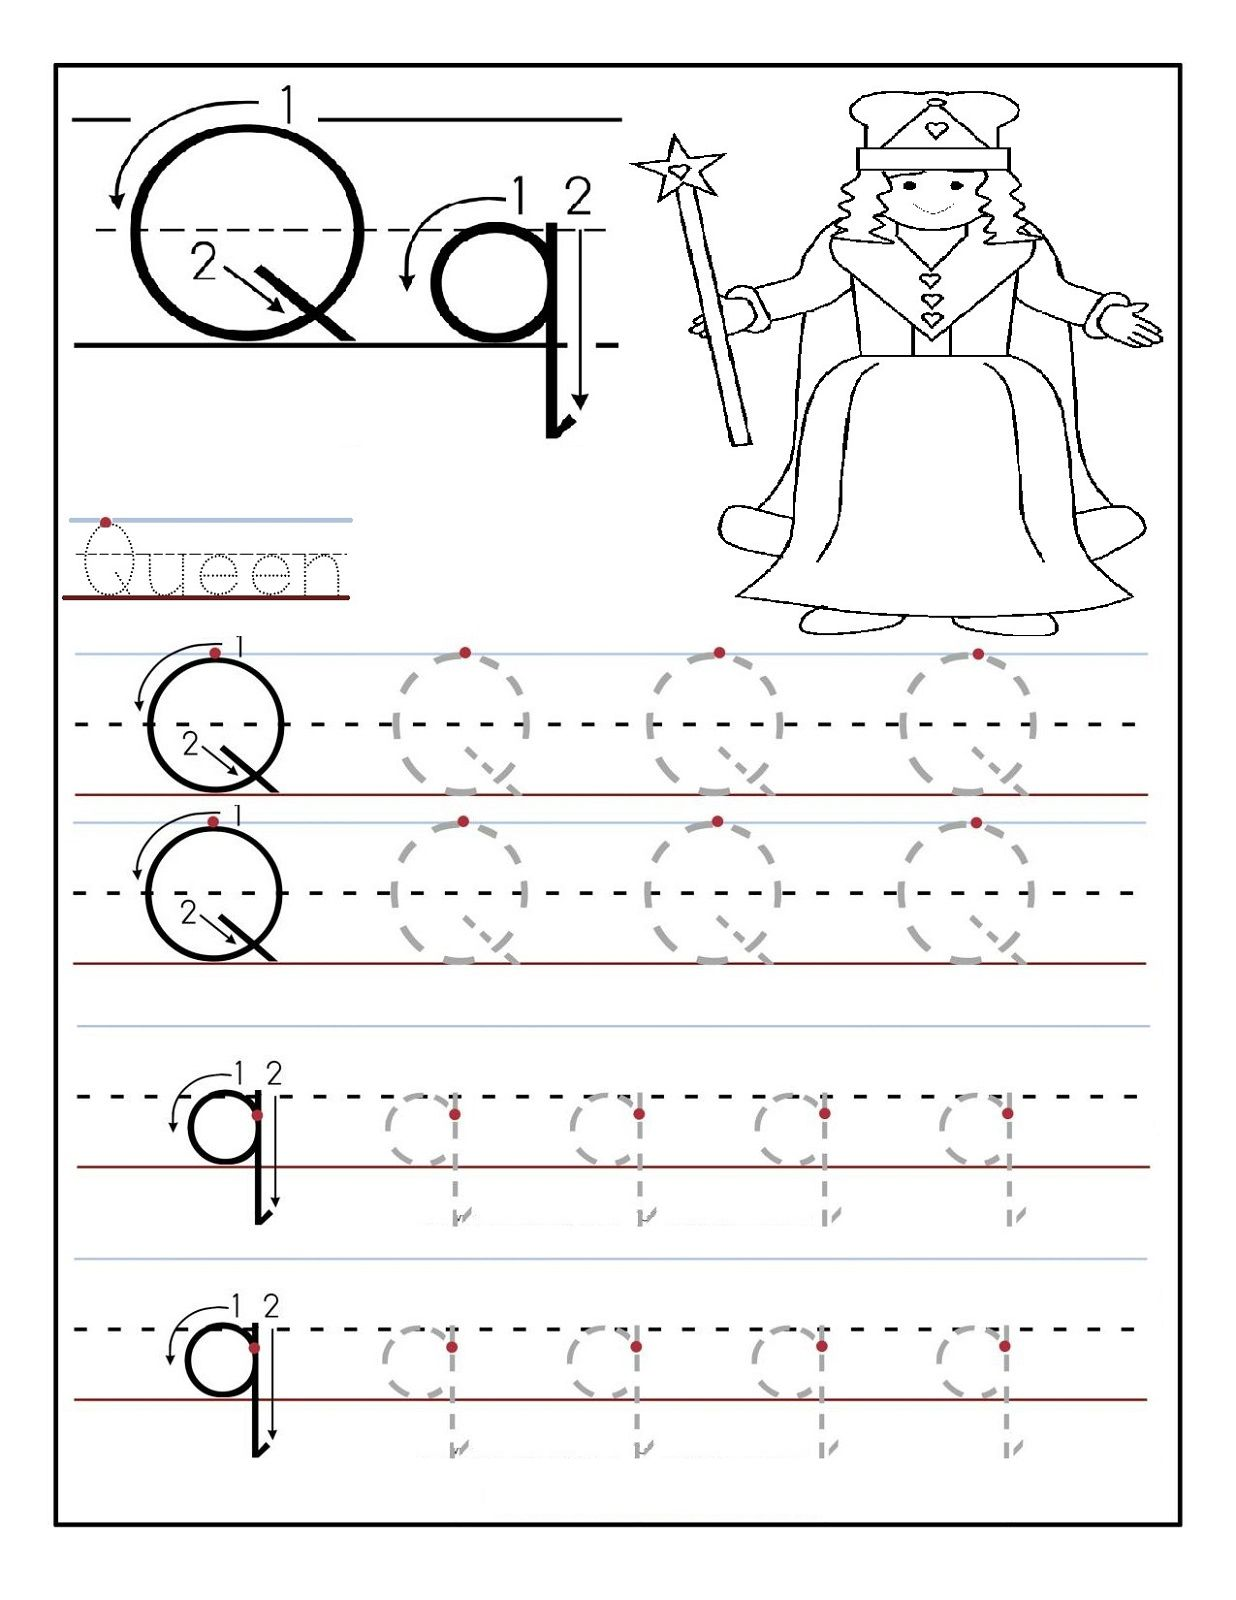 Preschool Alphabet Worksheets Queen